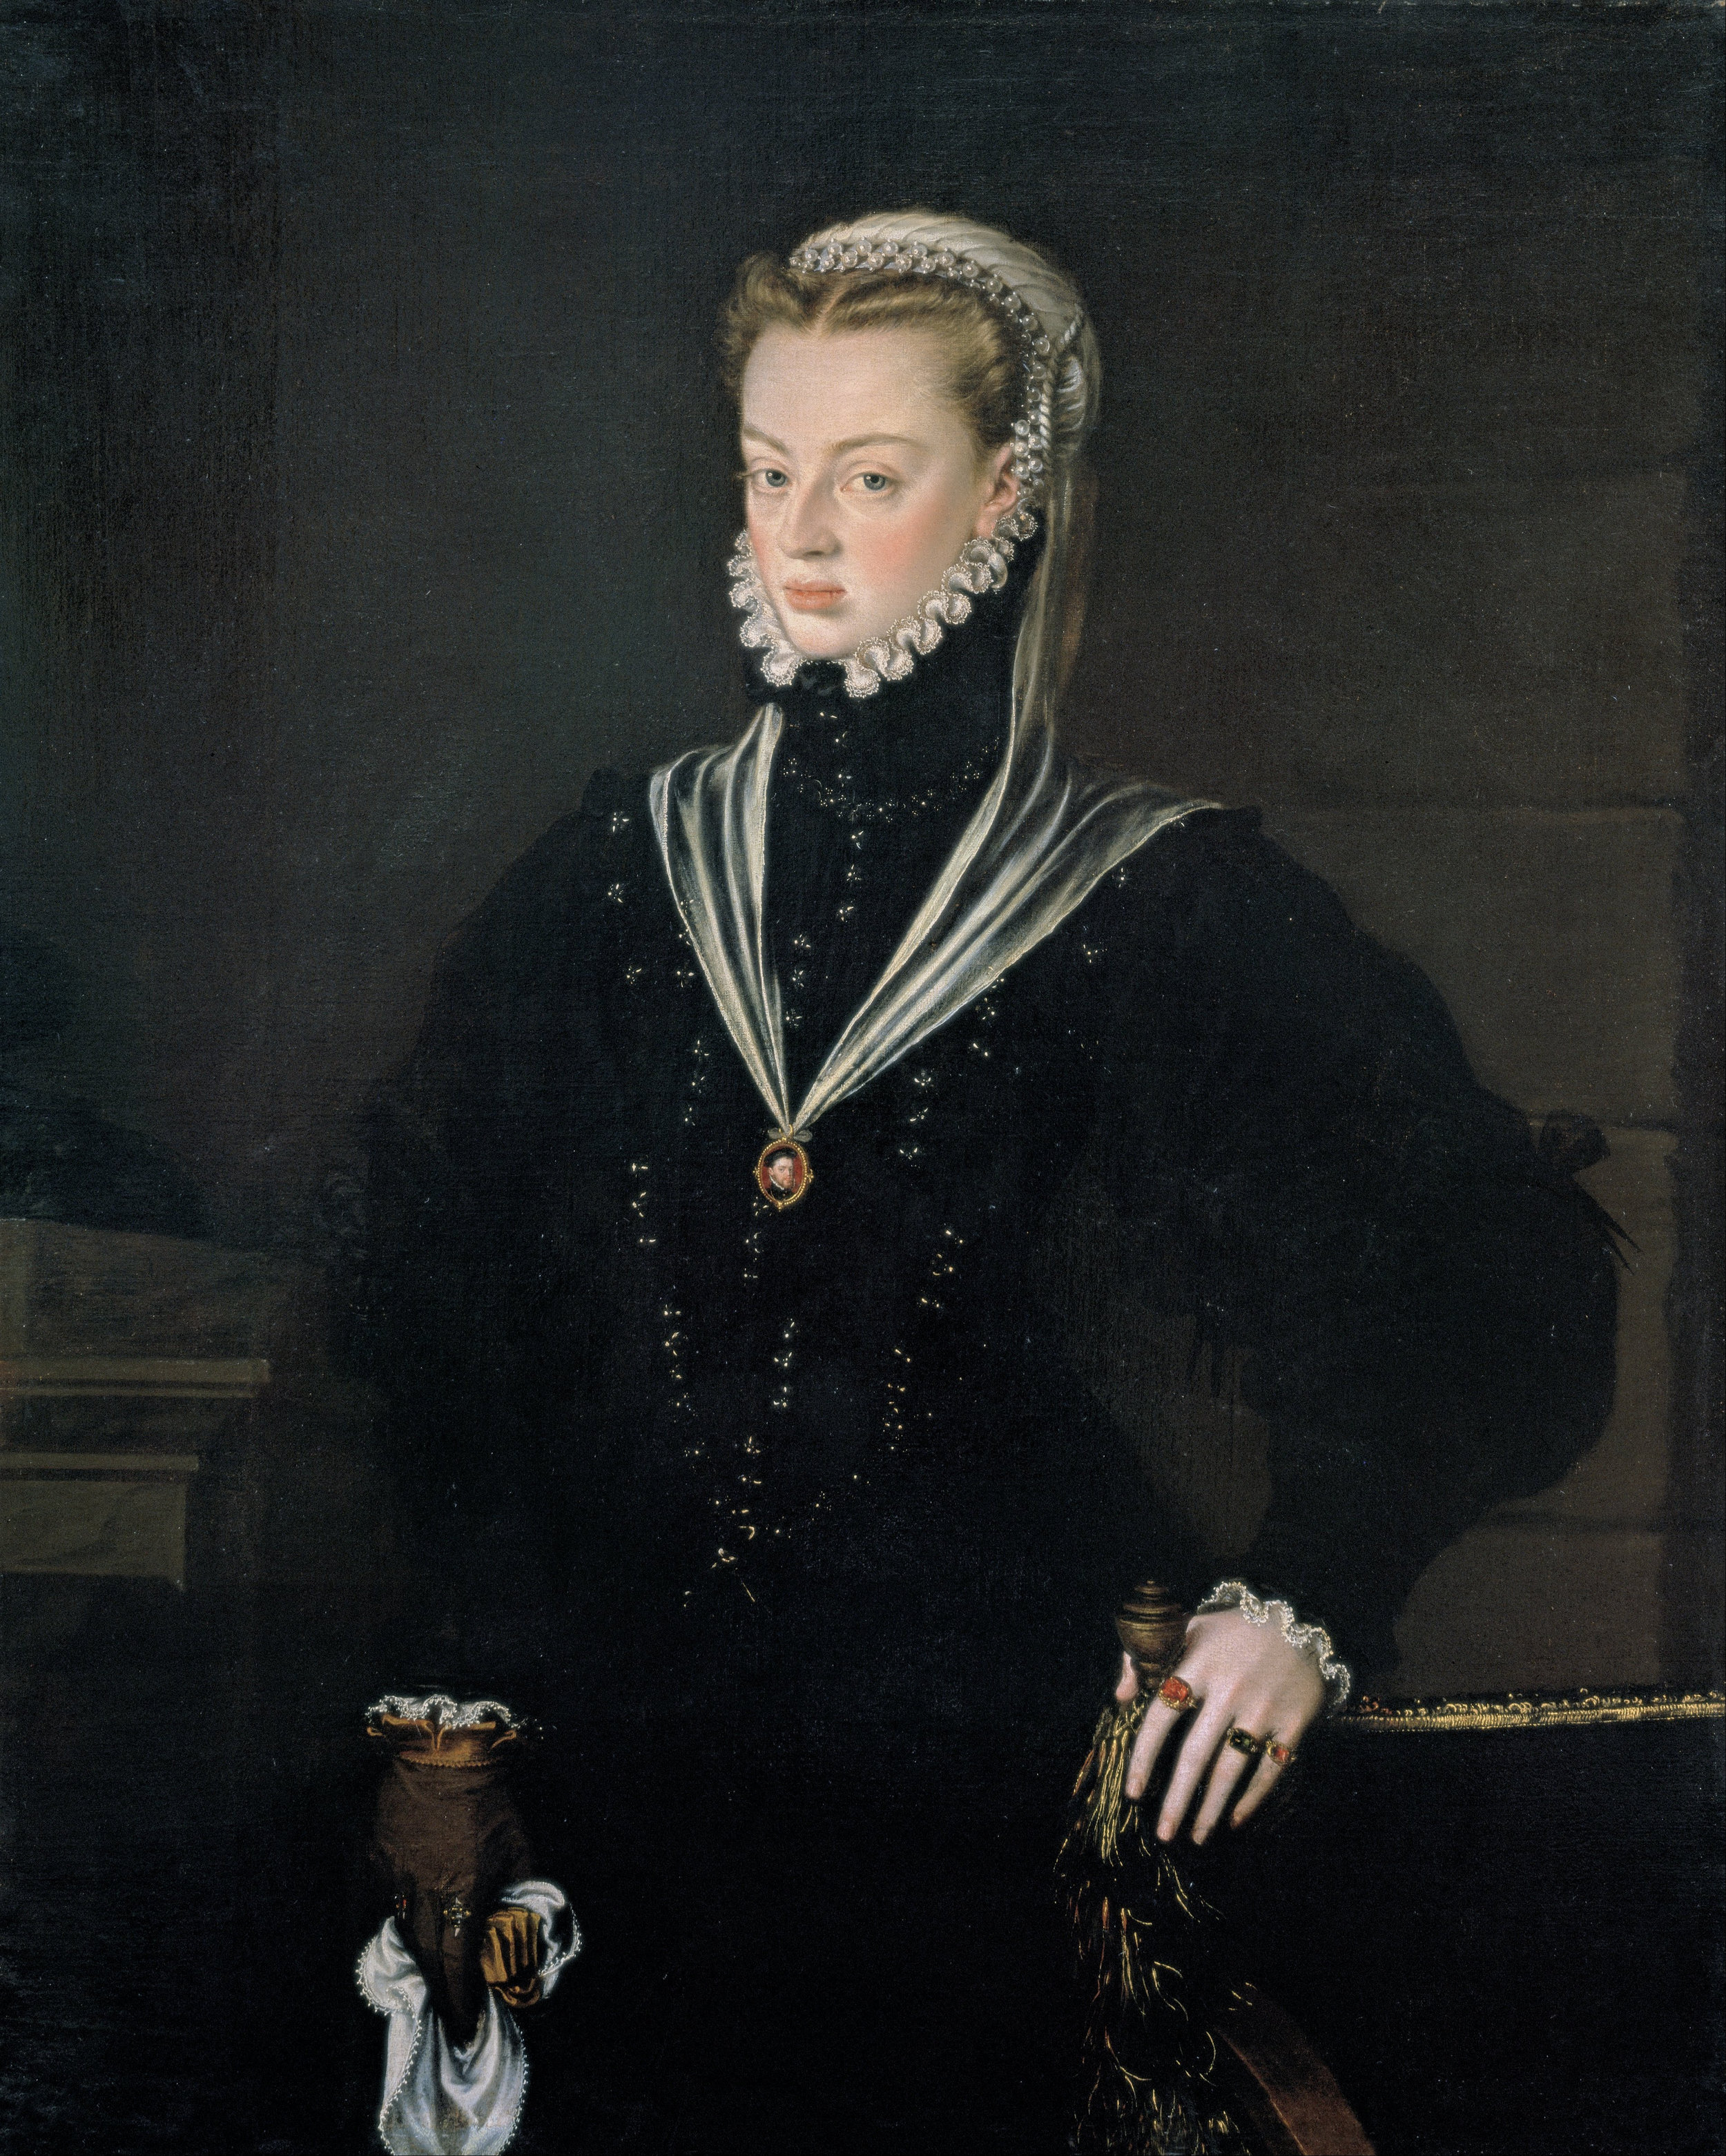 Portrait of Juana by Alonso Sánchez Coello, c. 1557.